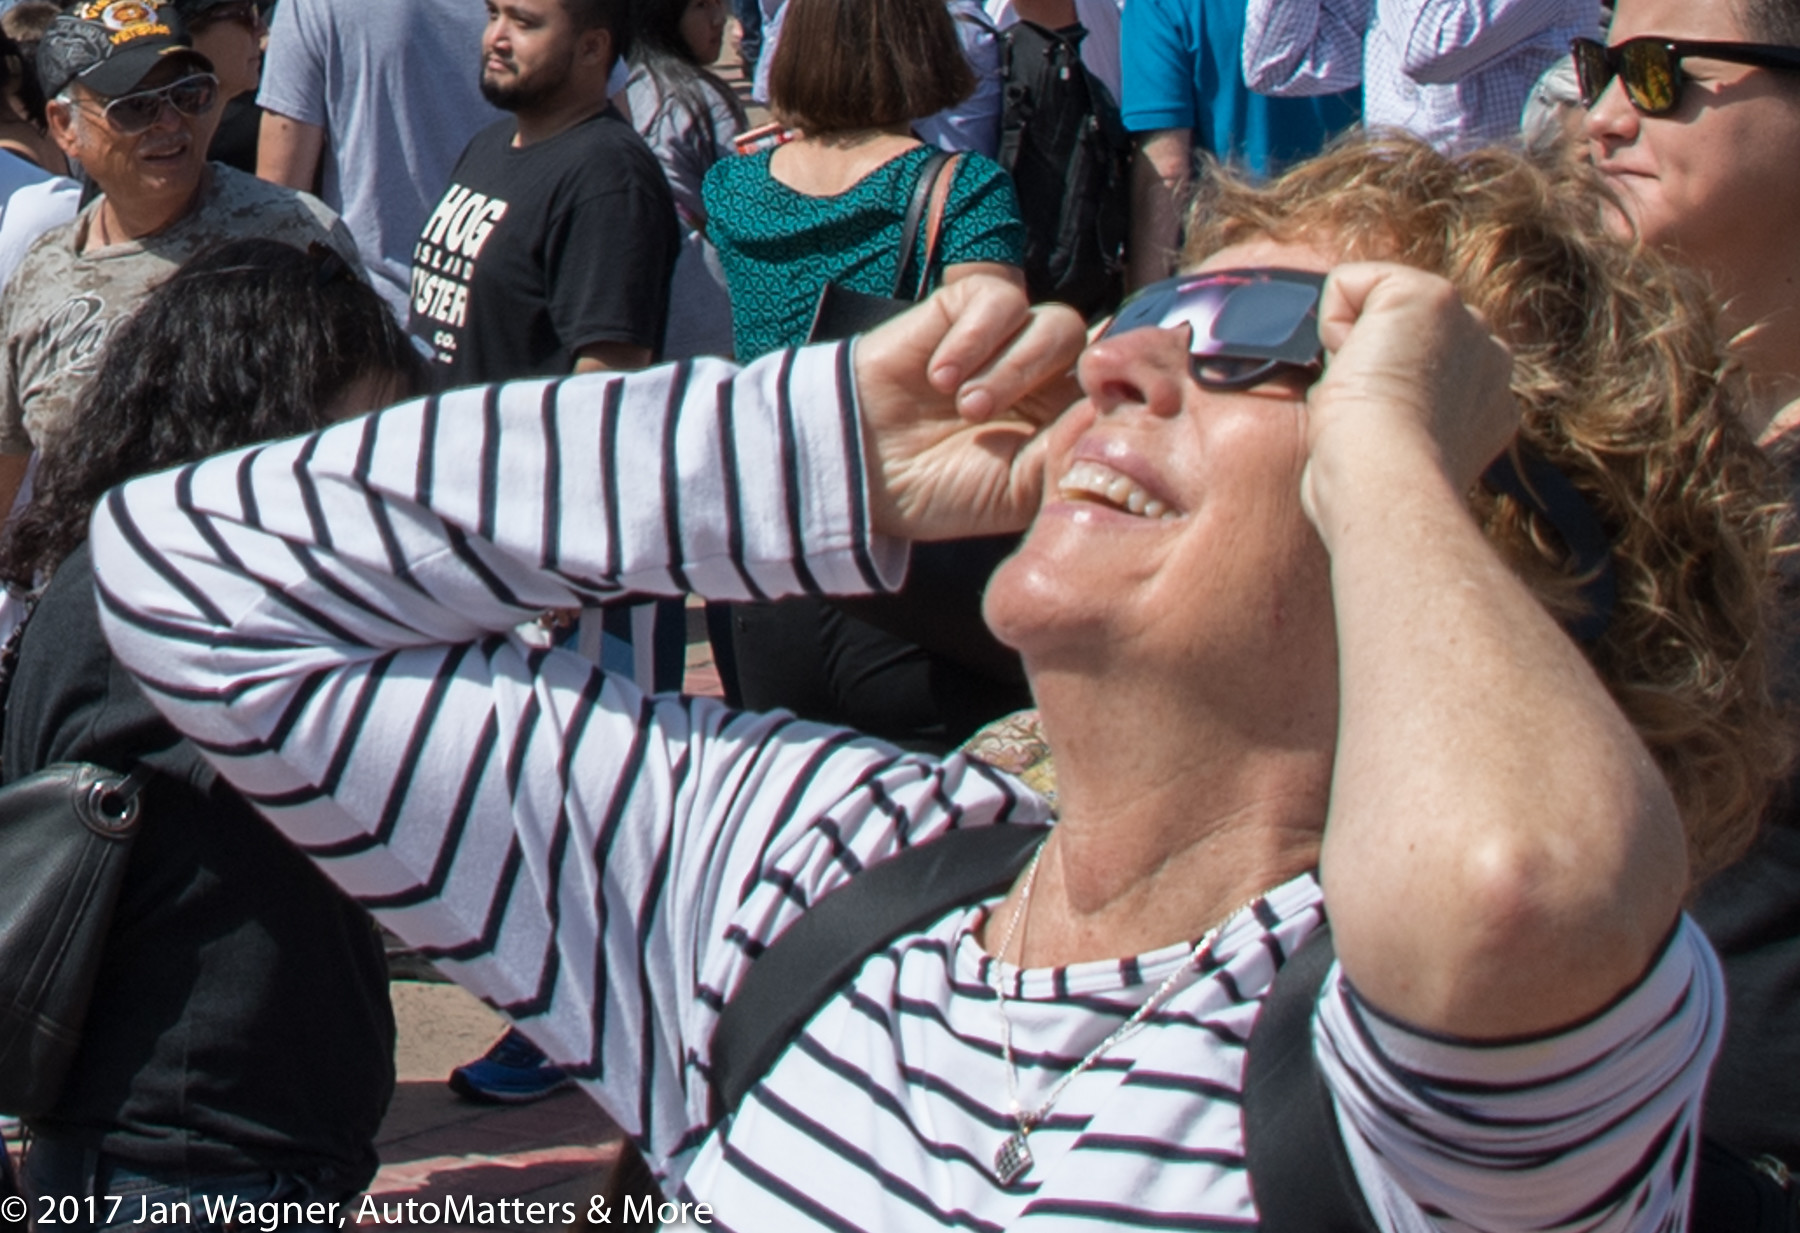 Enjoying the spectacle of the eclipse